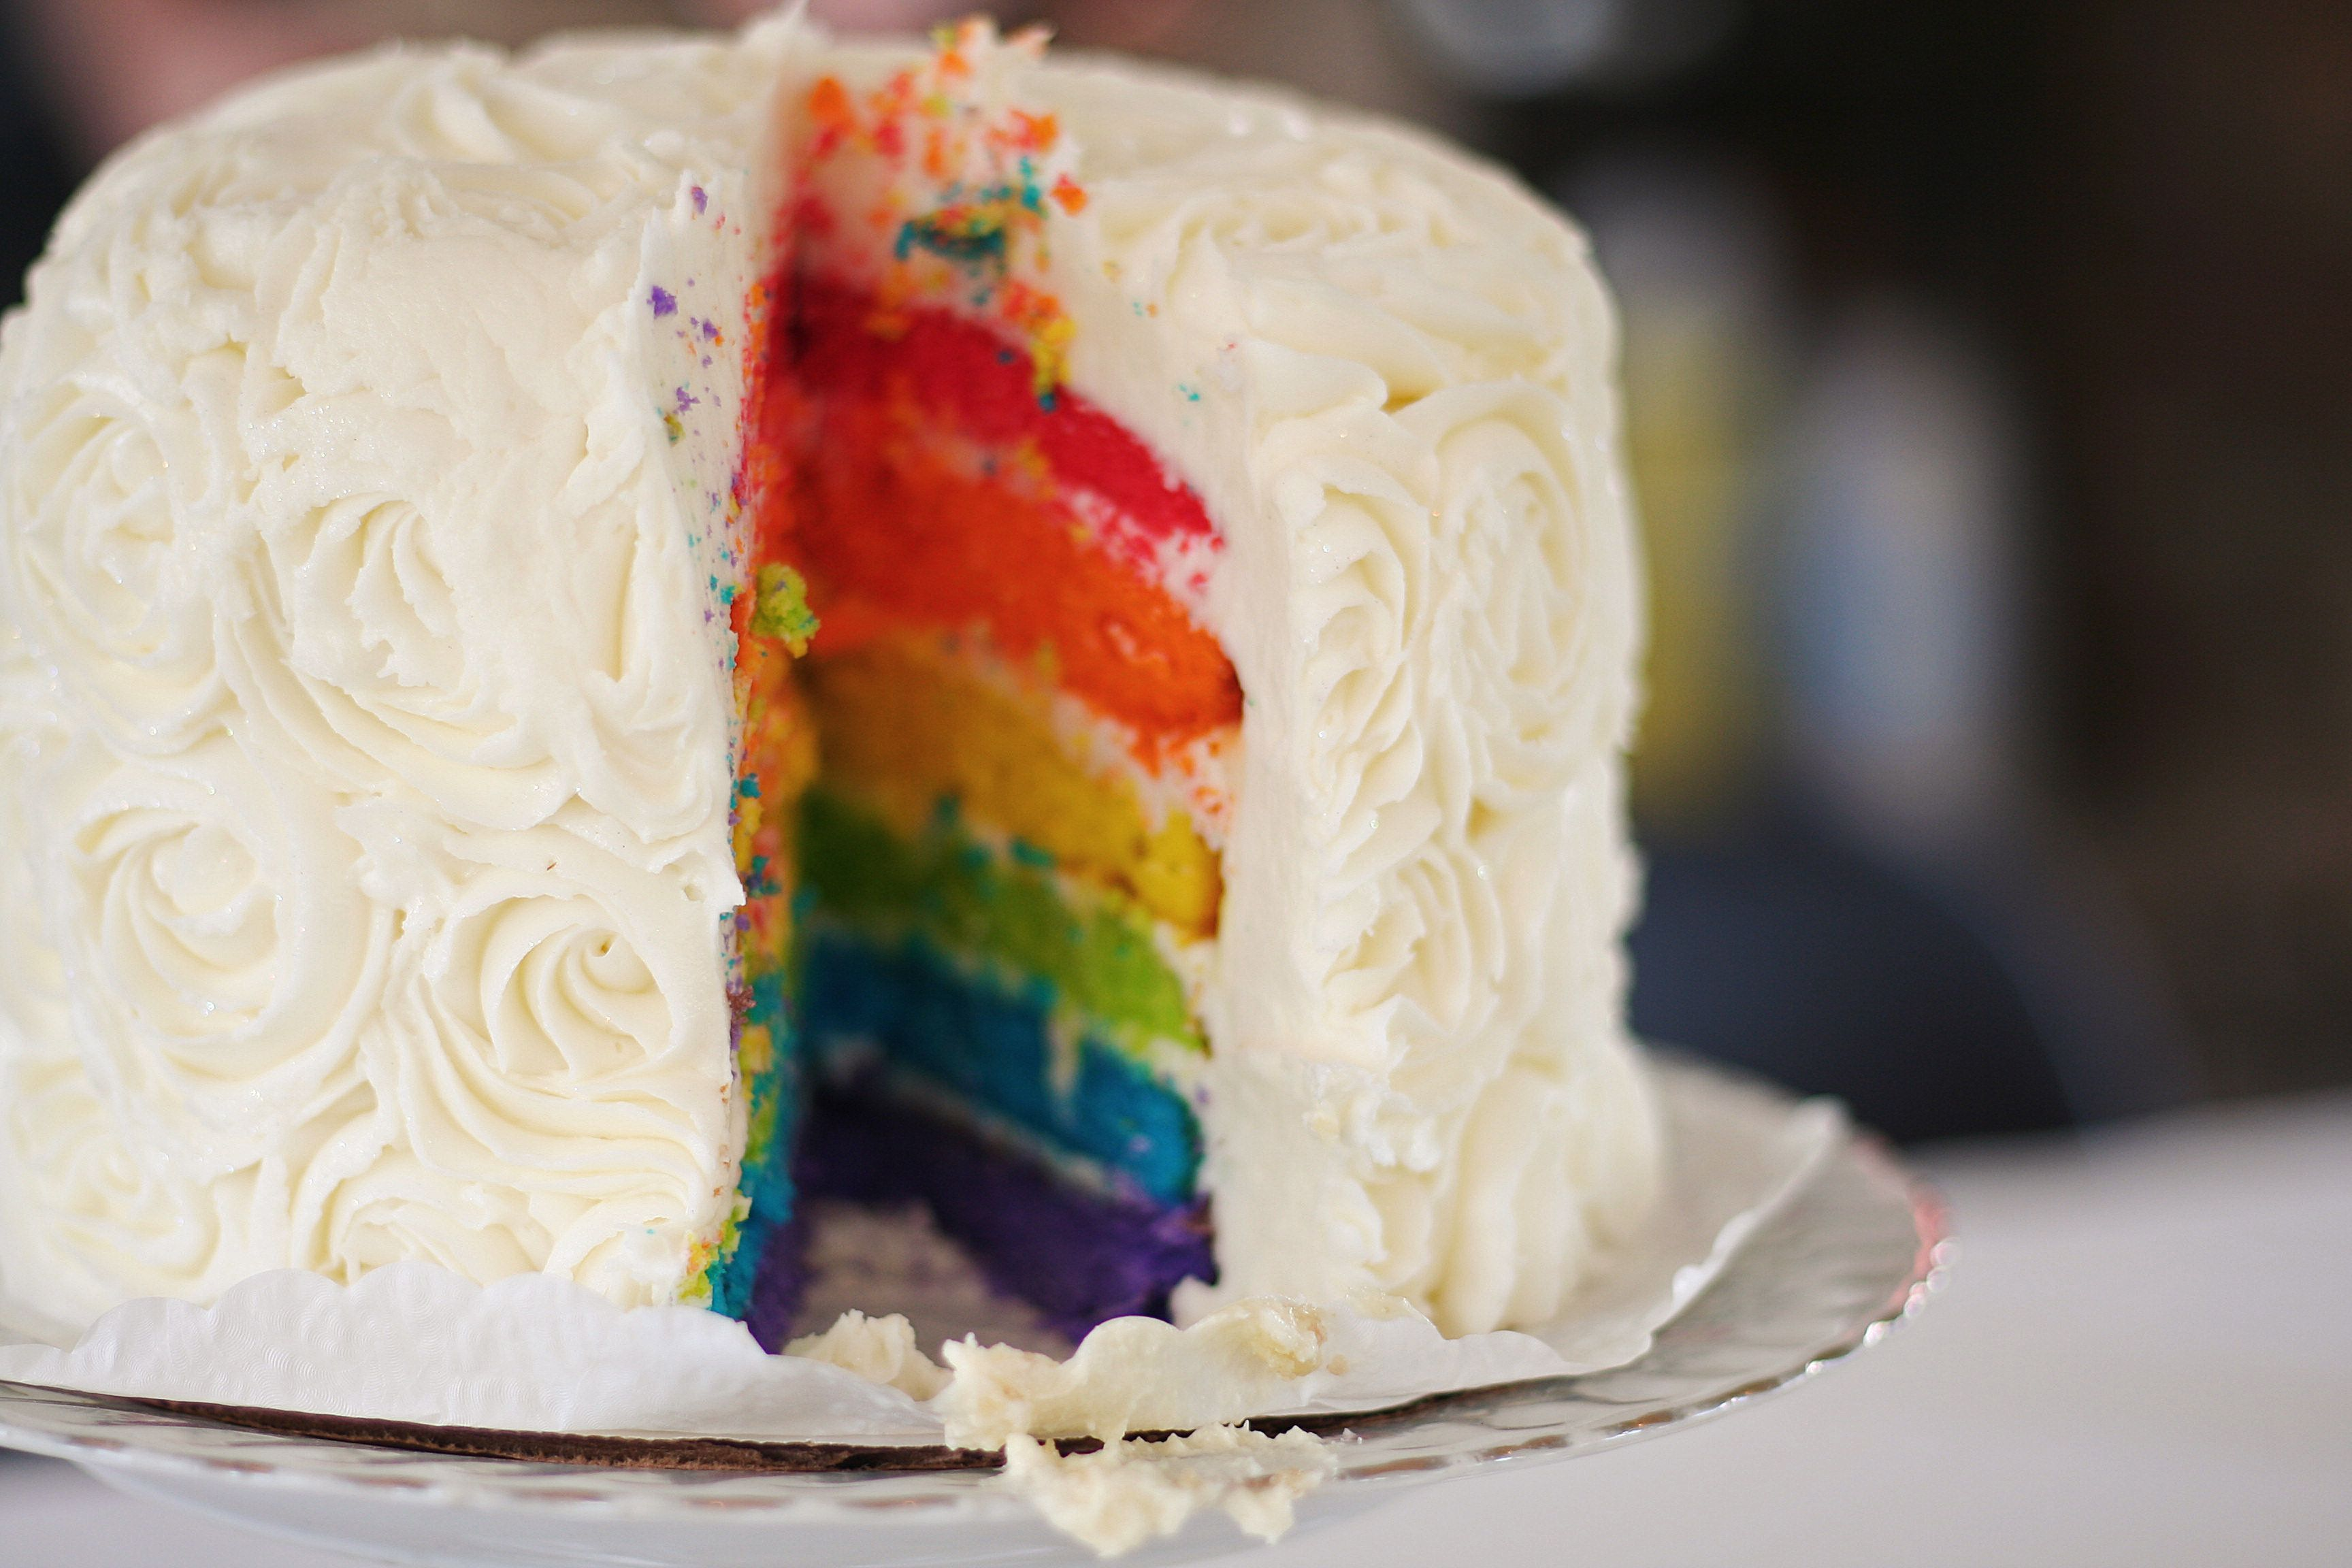 A white cake with rainbow layers.